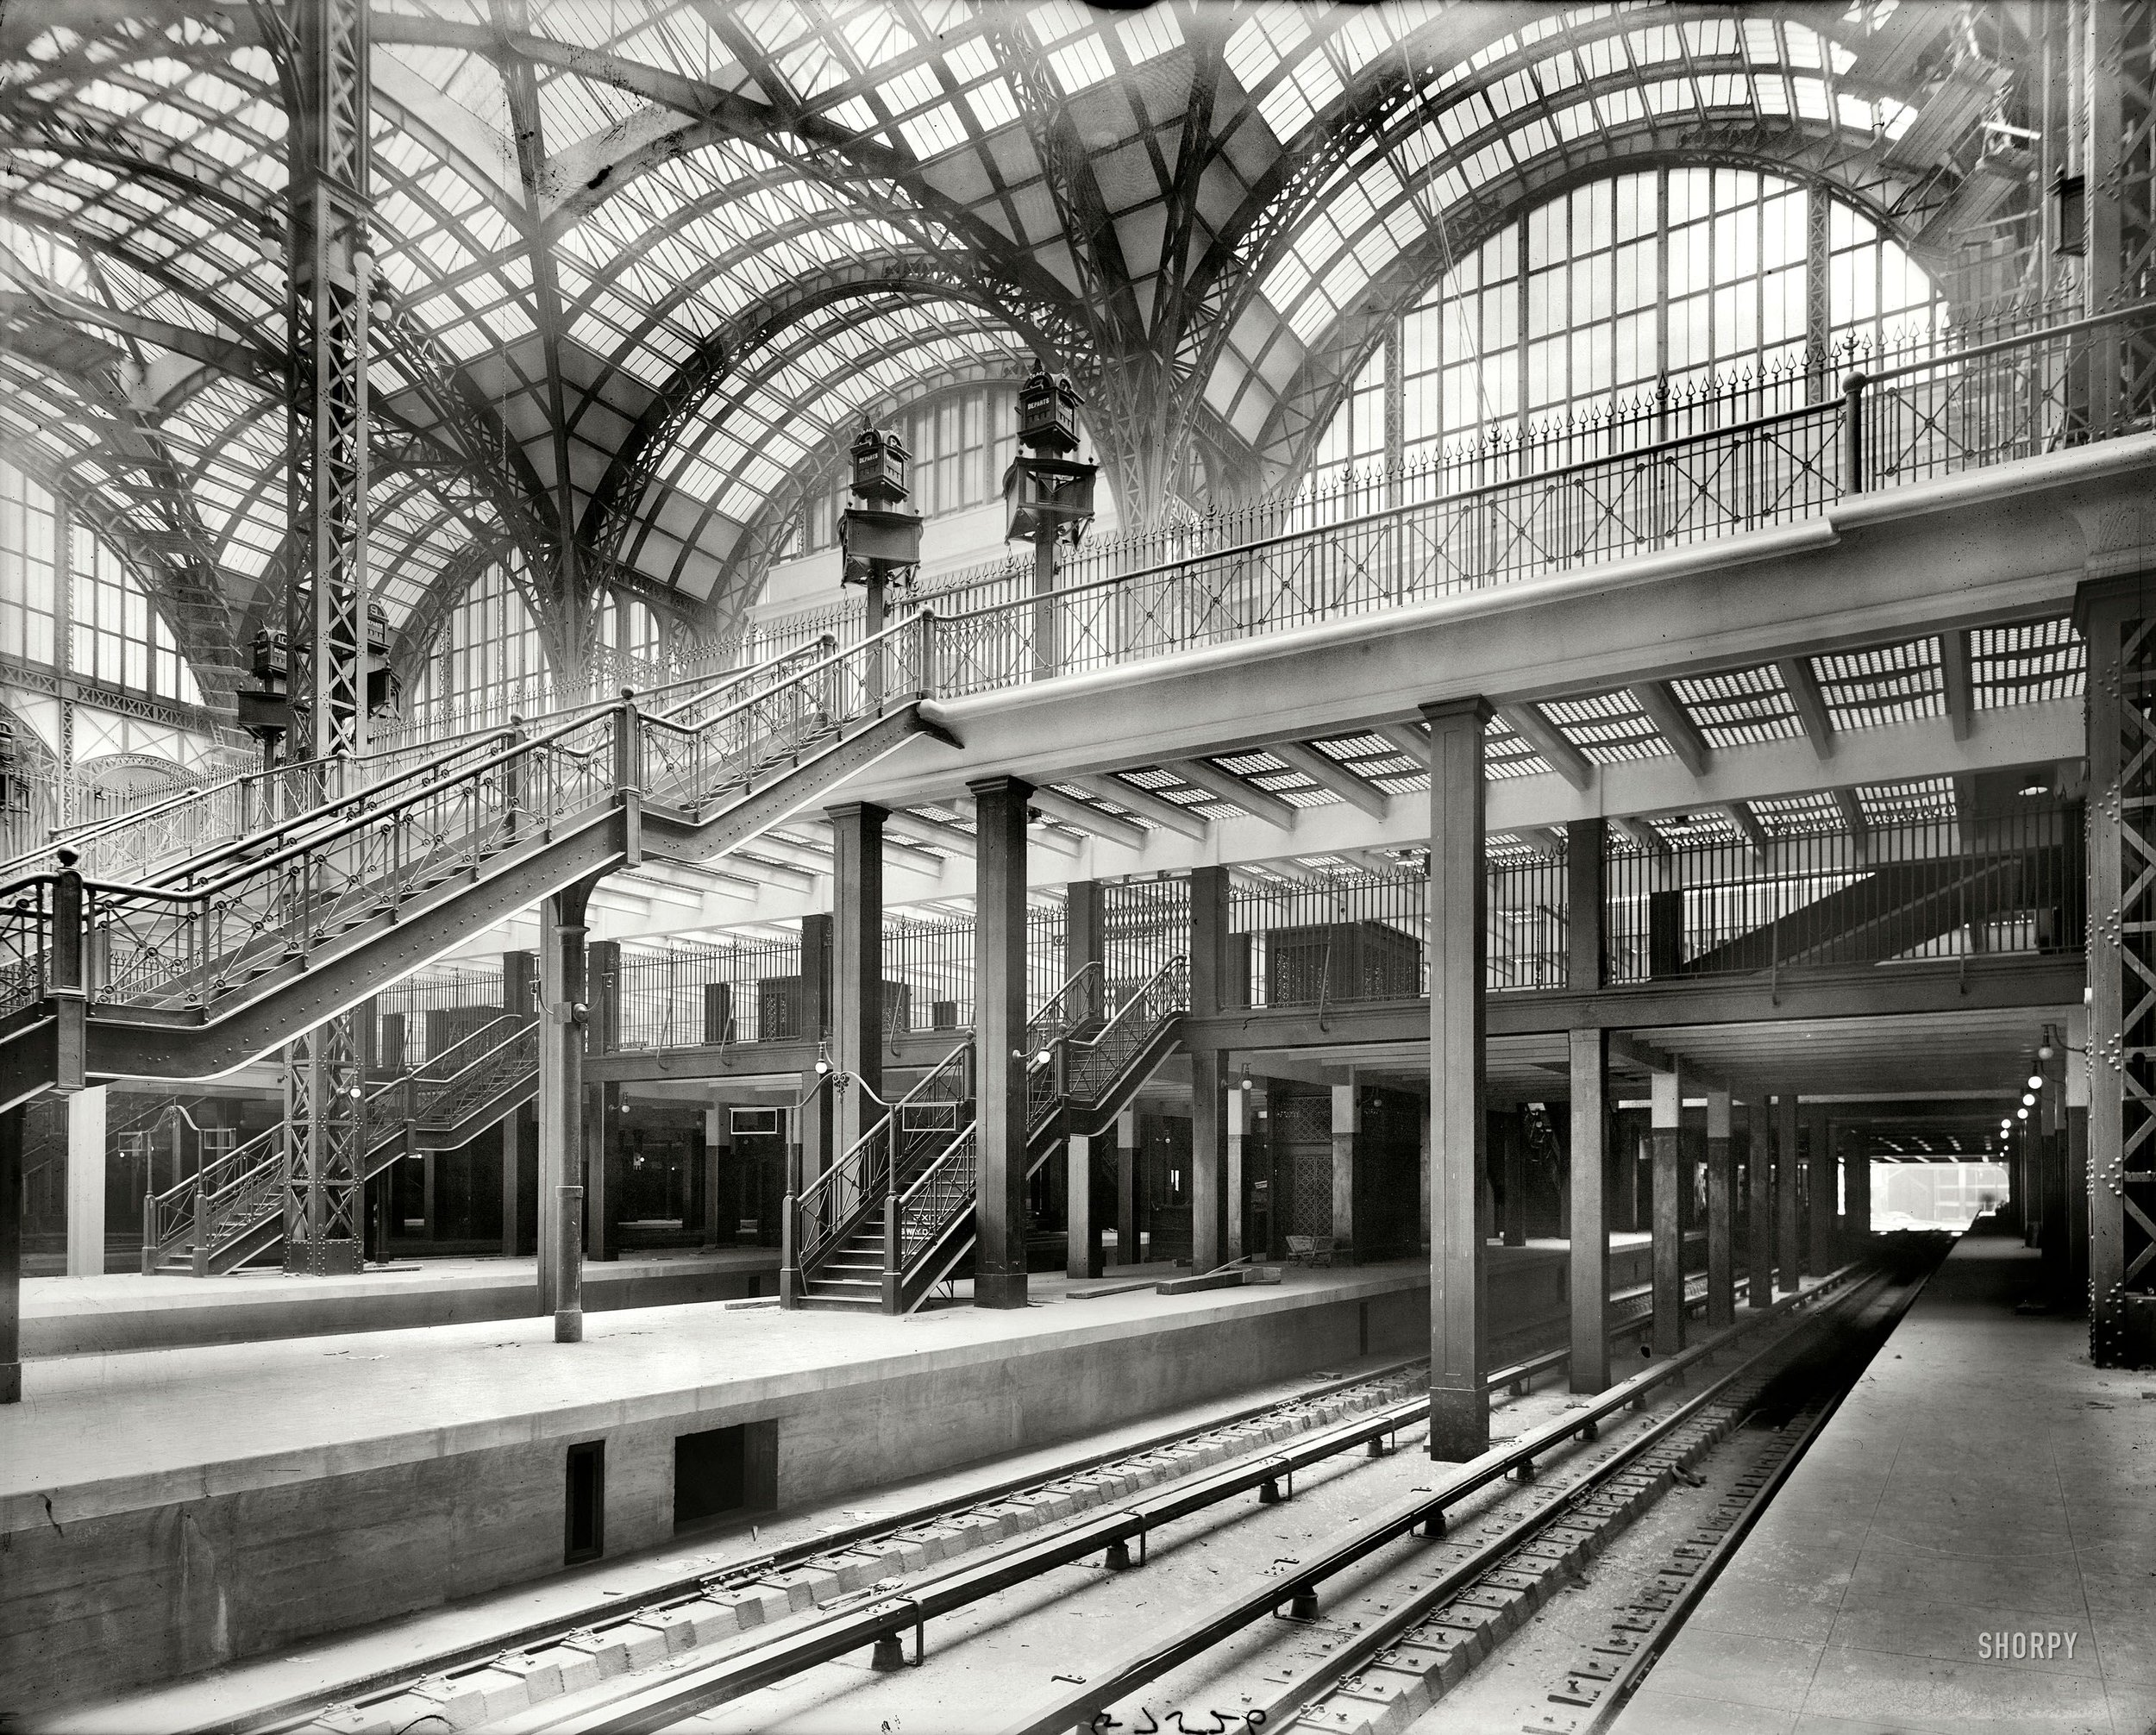 Original Penn Station ca. 1910 (courtesy Shorpy)